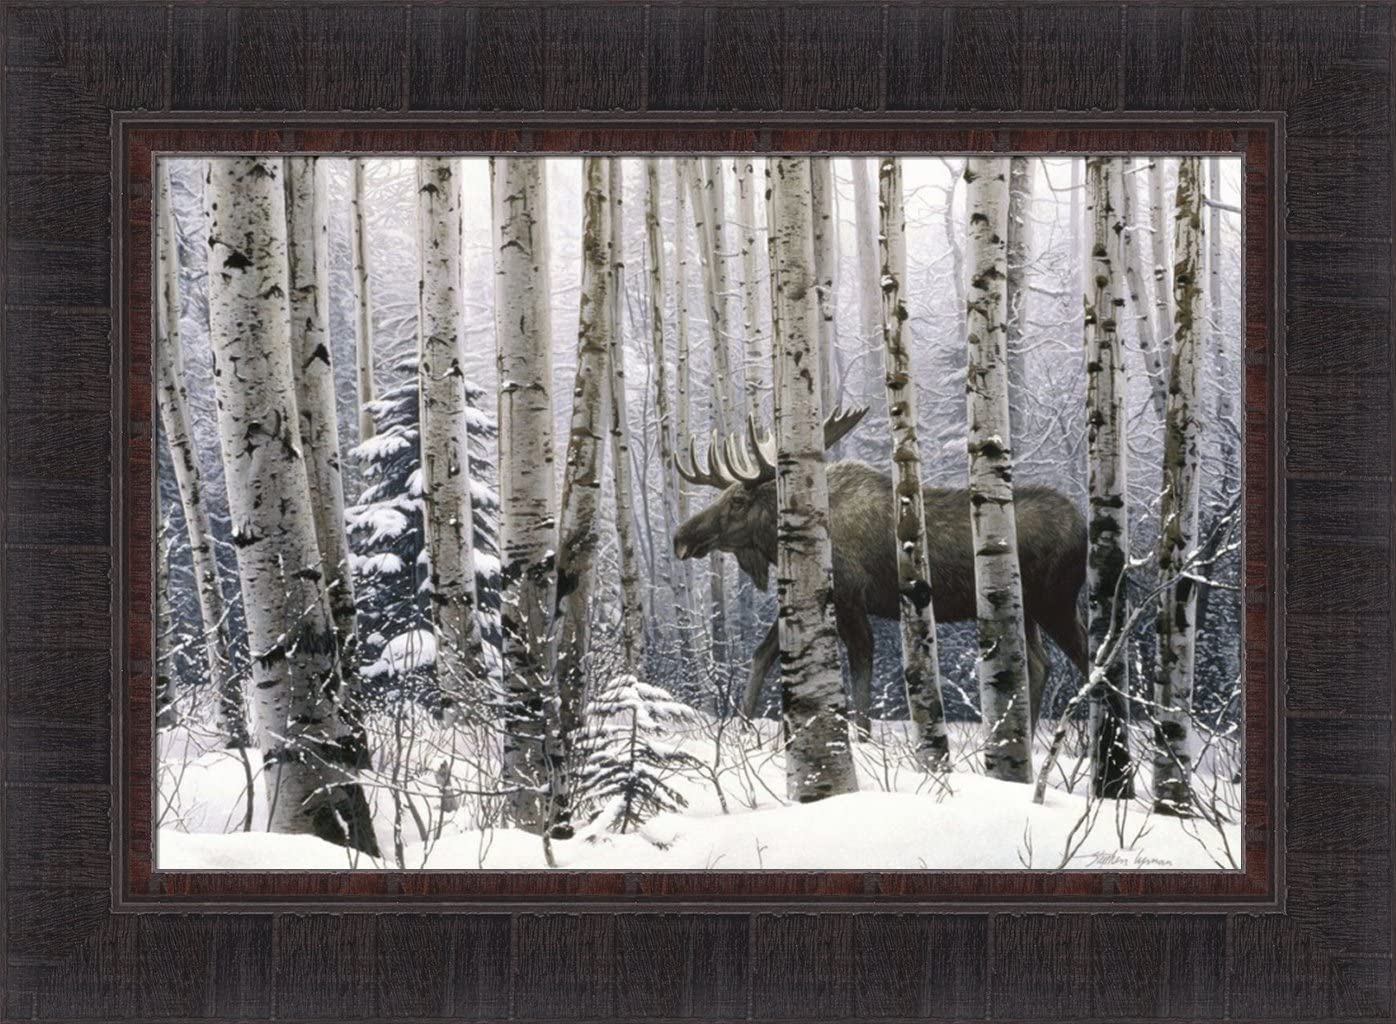 Home Cabin Décor A Walk in Award The by Moos Stephen NEW Lyman 17x23 Woods